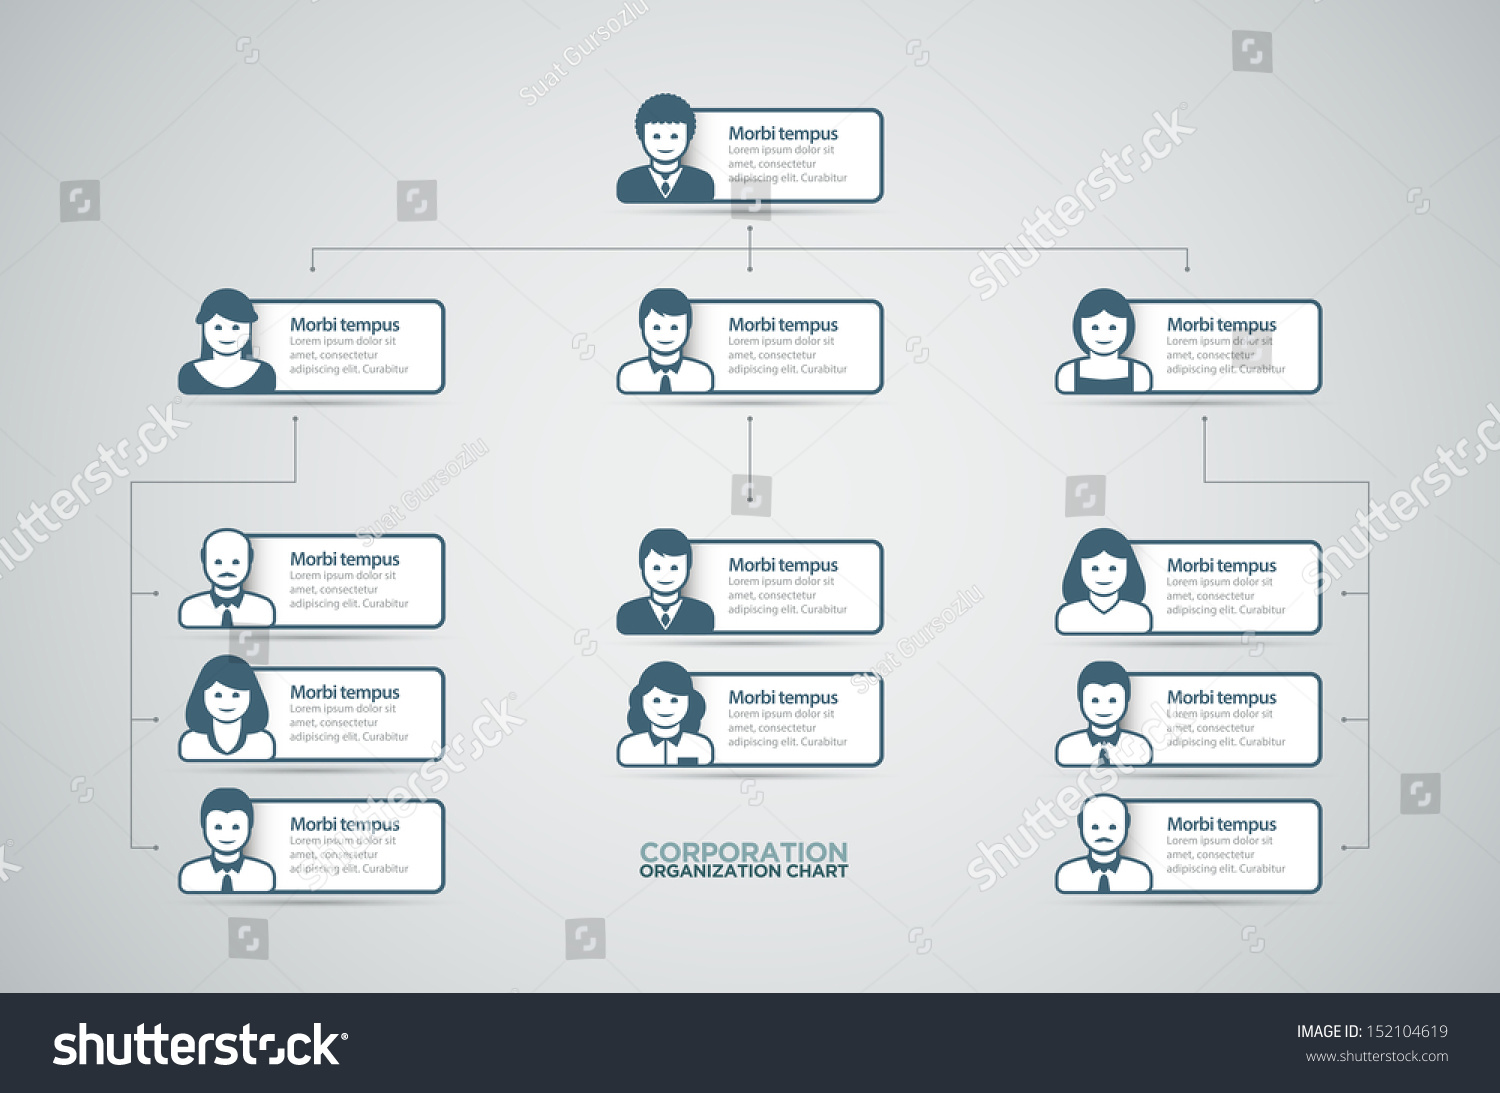 Corporate Organization Chart Business People Icons Vector – Business Organizational Chart